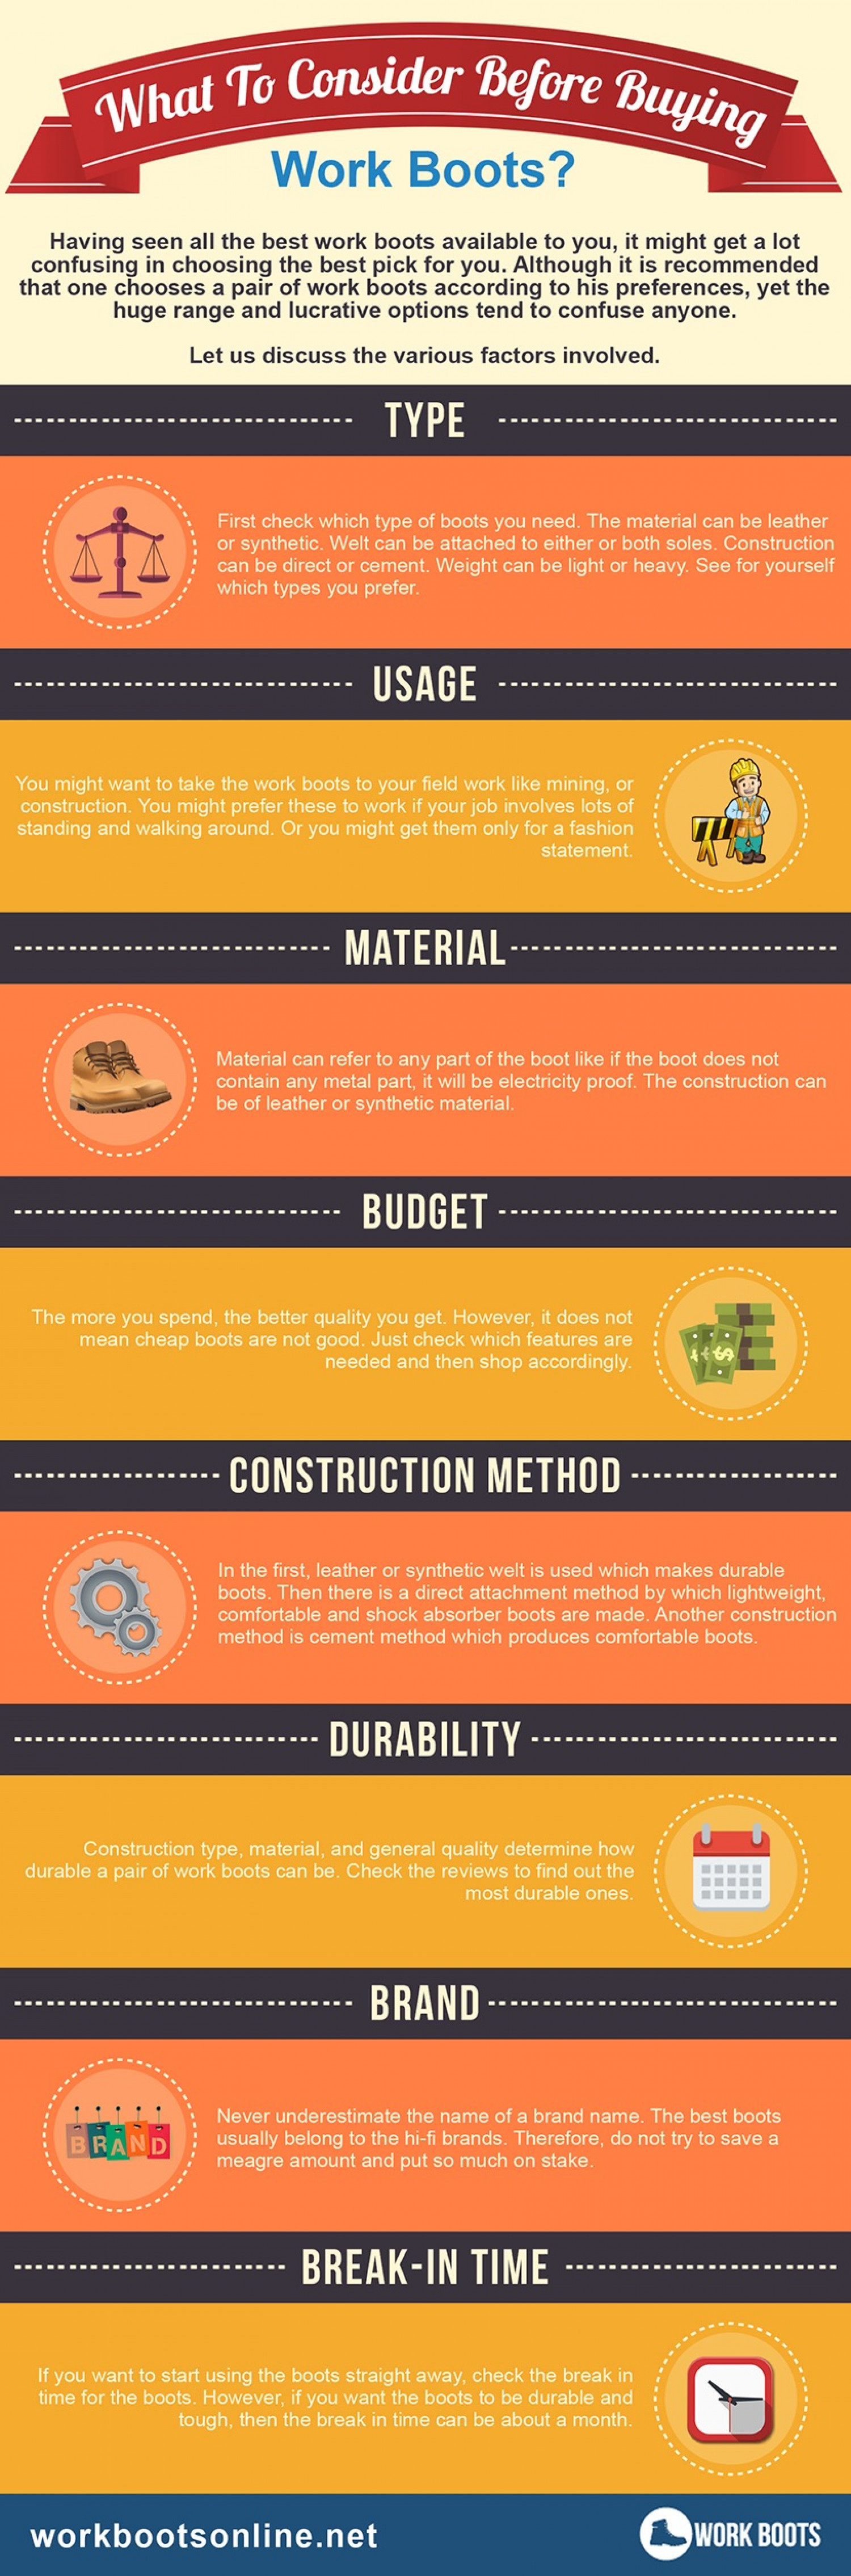 Infographic] What To Consider Before Buying Work Boots? | Visual.ly